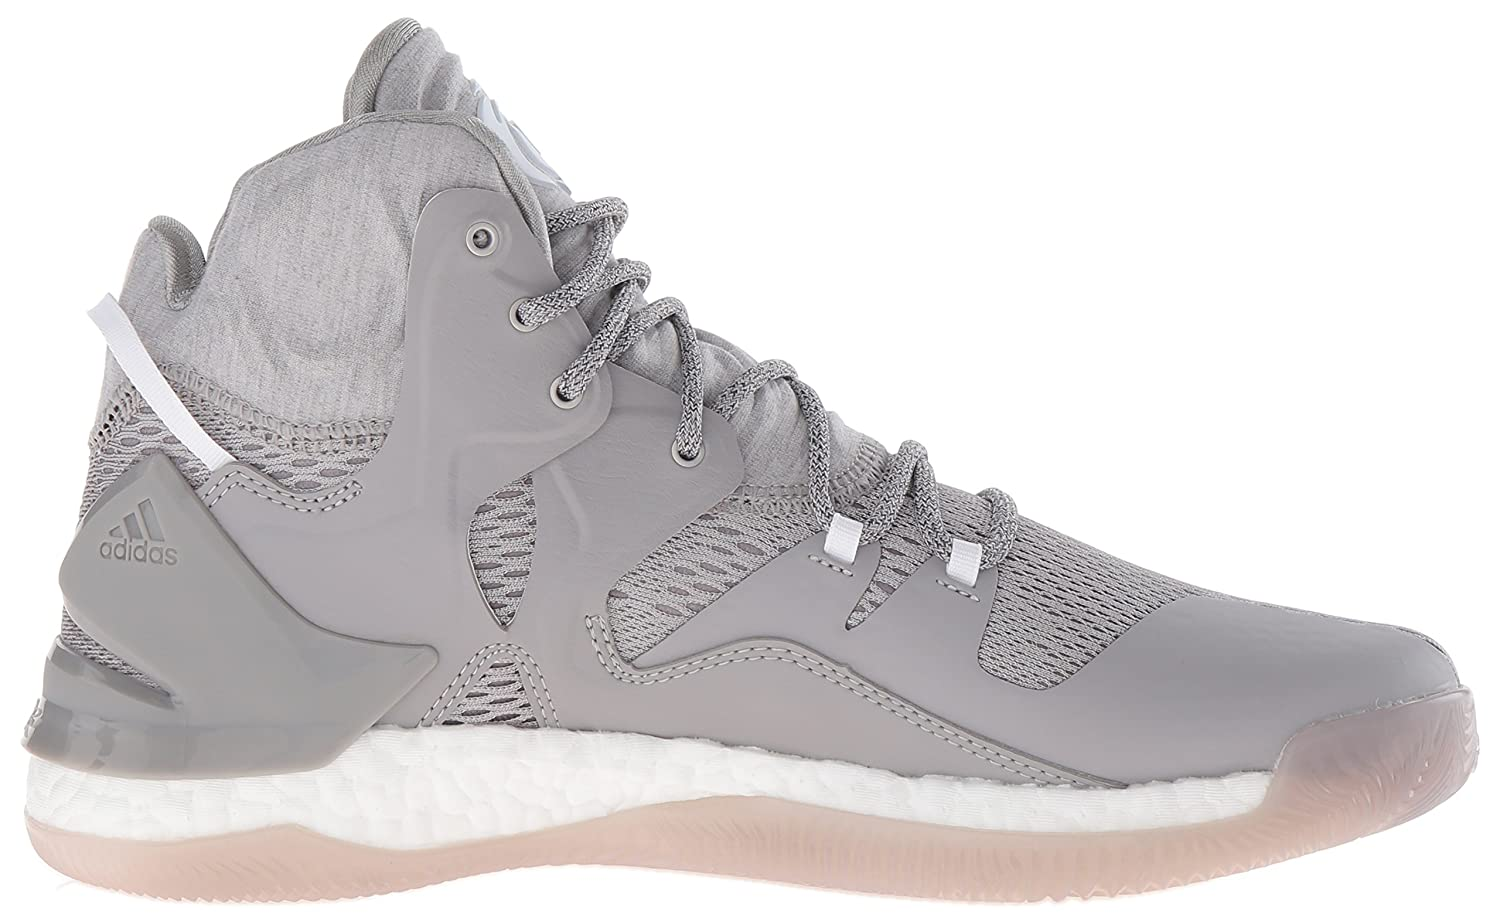 separation shoes 713e8 5a90f Amazon.com  adidas Performance Mens D Rose 7 Basketball Shoe